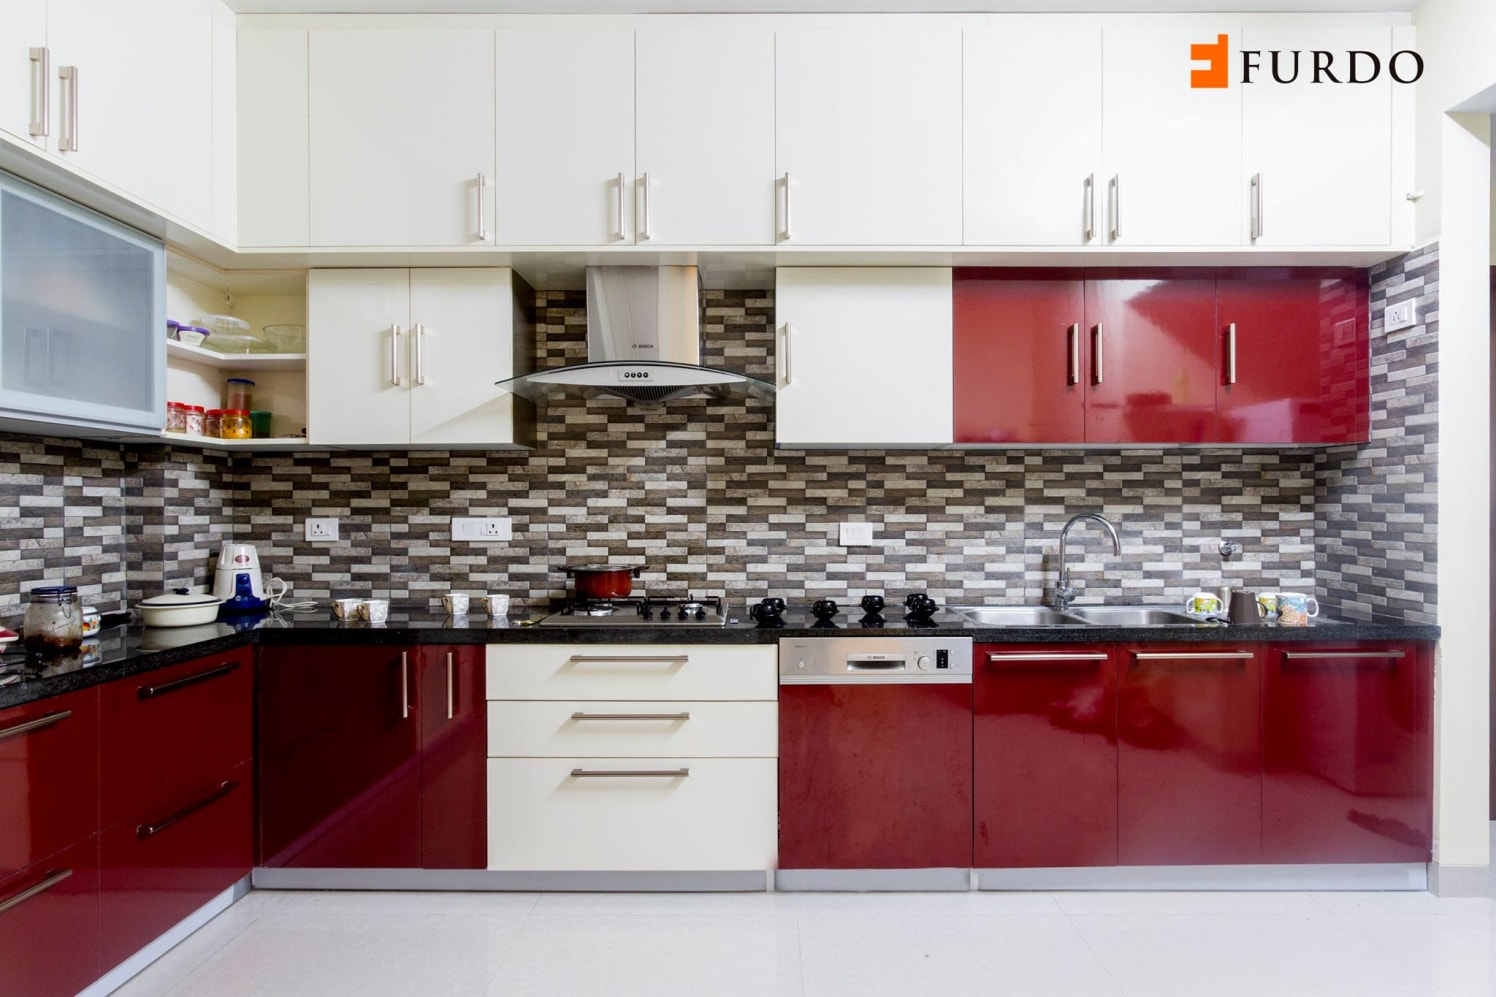 L shape kitchen with red & white cabinets by Furdo.com